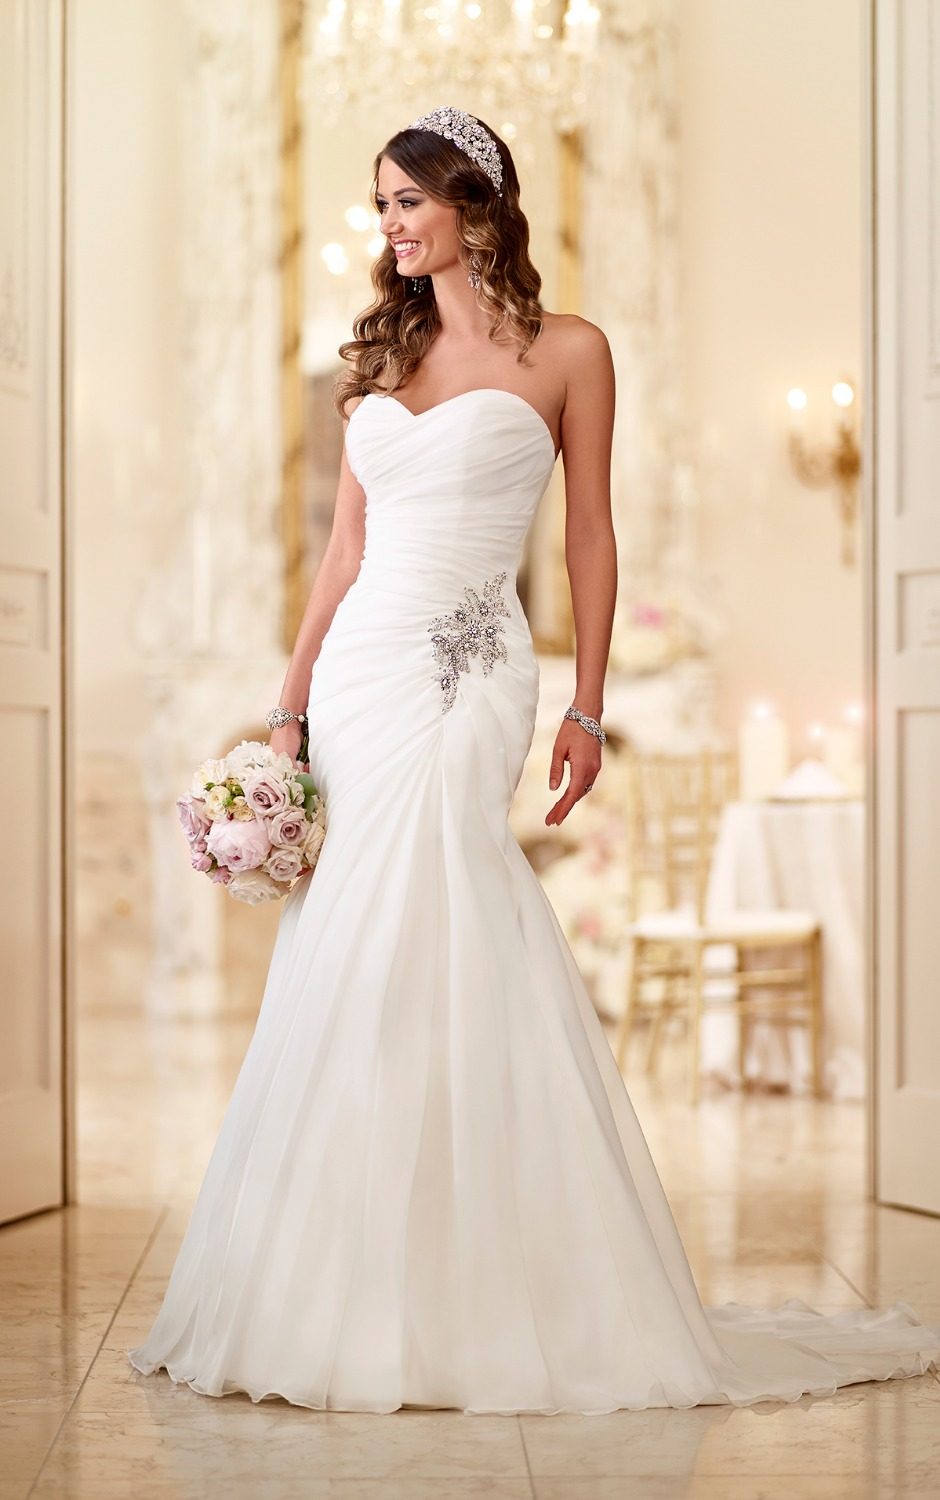 Backless Mermaid Wedding Dresses with Crystals | Dress images